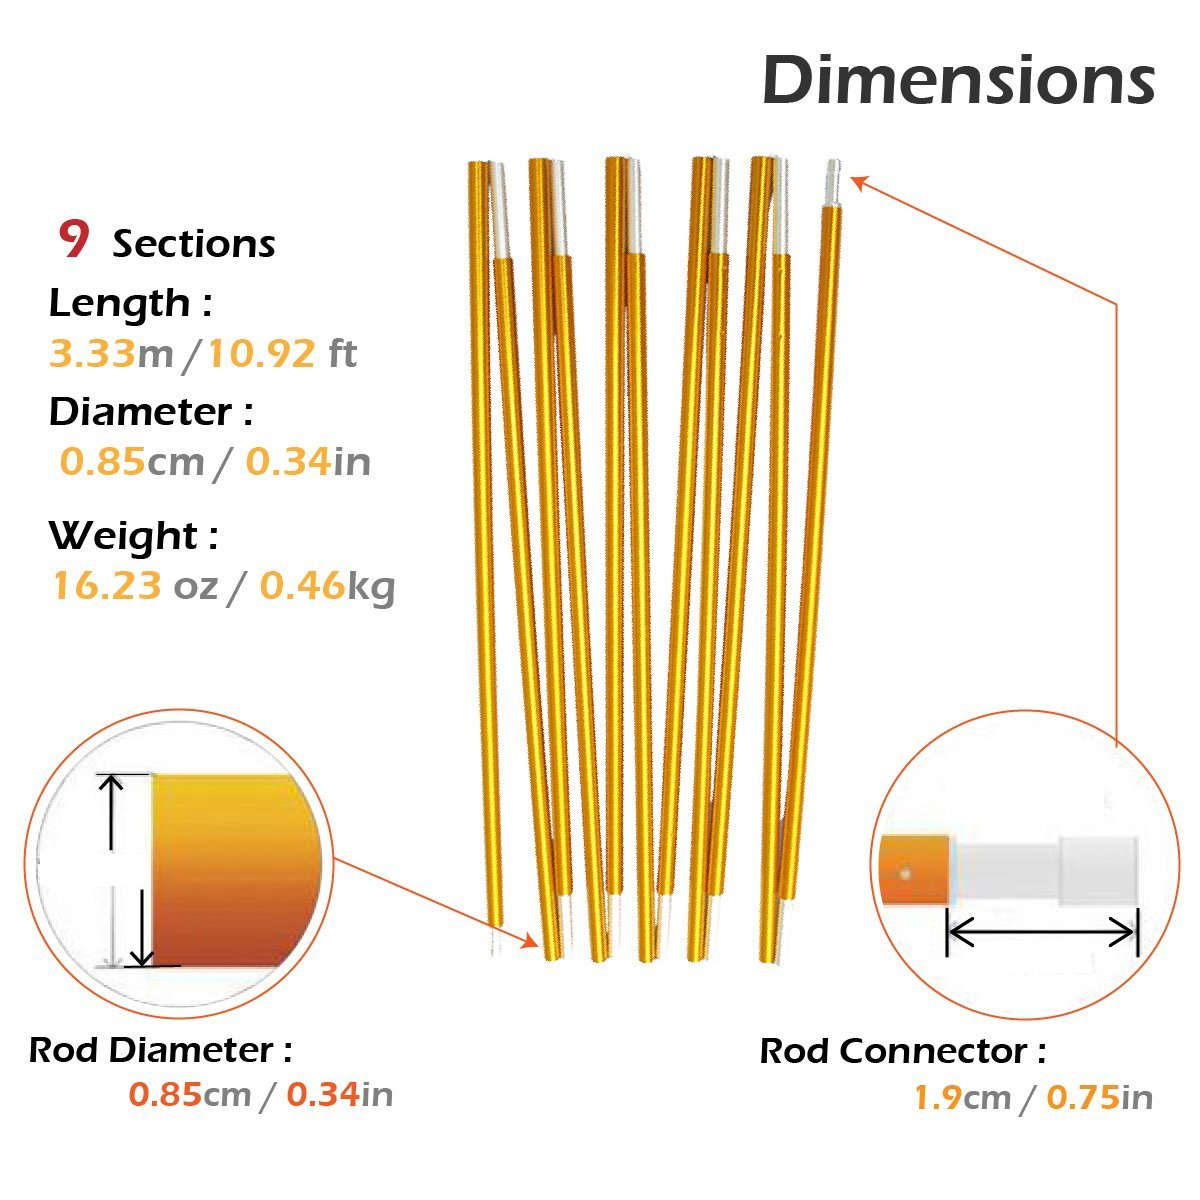 Aluminium Rod Tent Pole Replacement Accessories Tent Bar Tent Building Supporting Rod Awning Frames Kit for Hiking Camping TRIWONDER Tent Pole 2 PCS